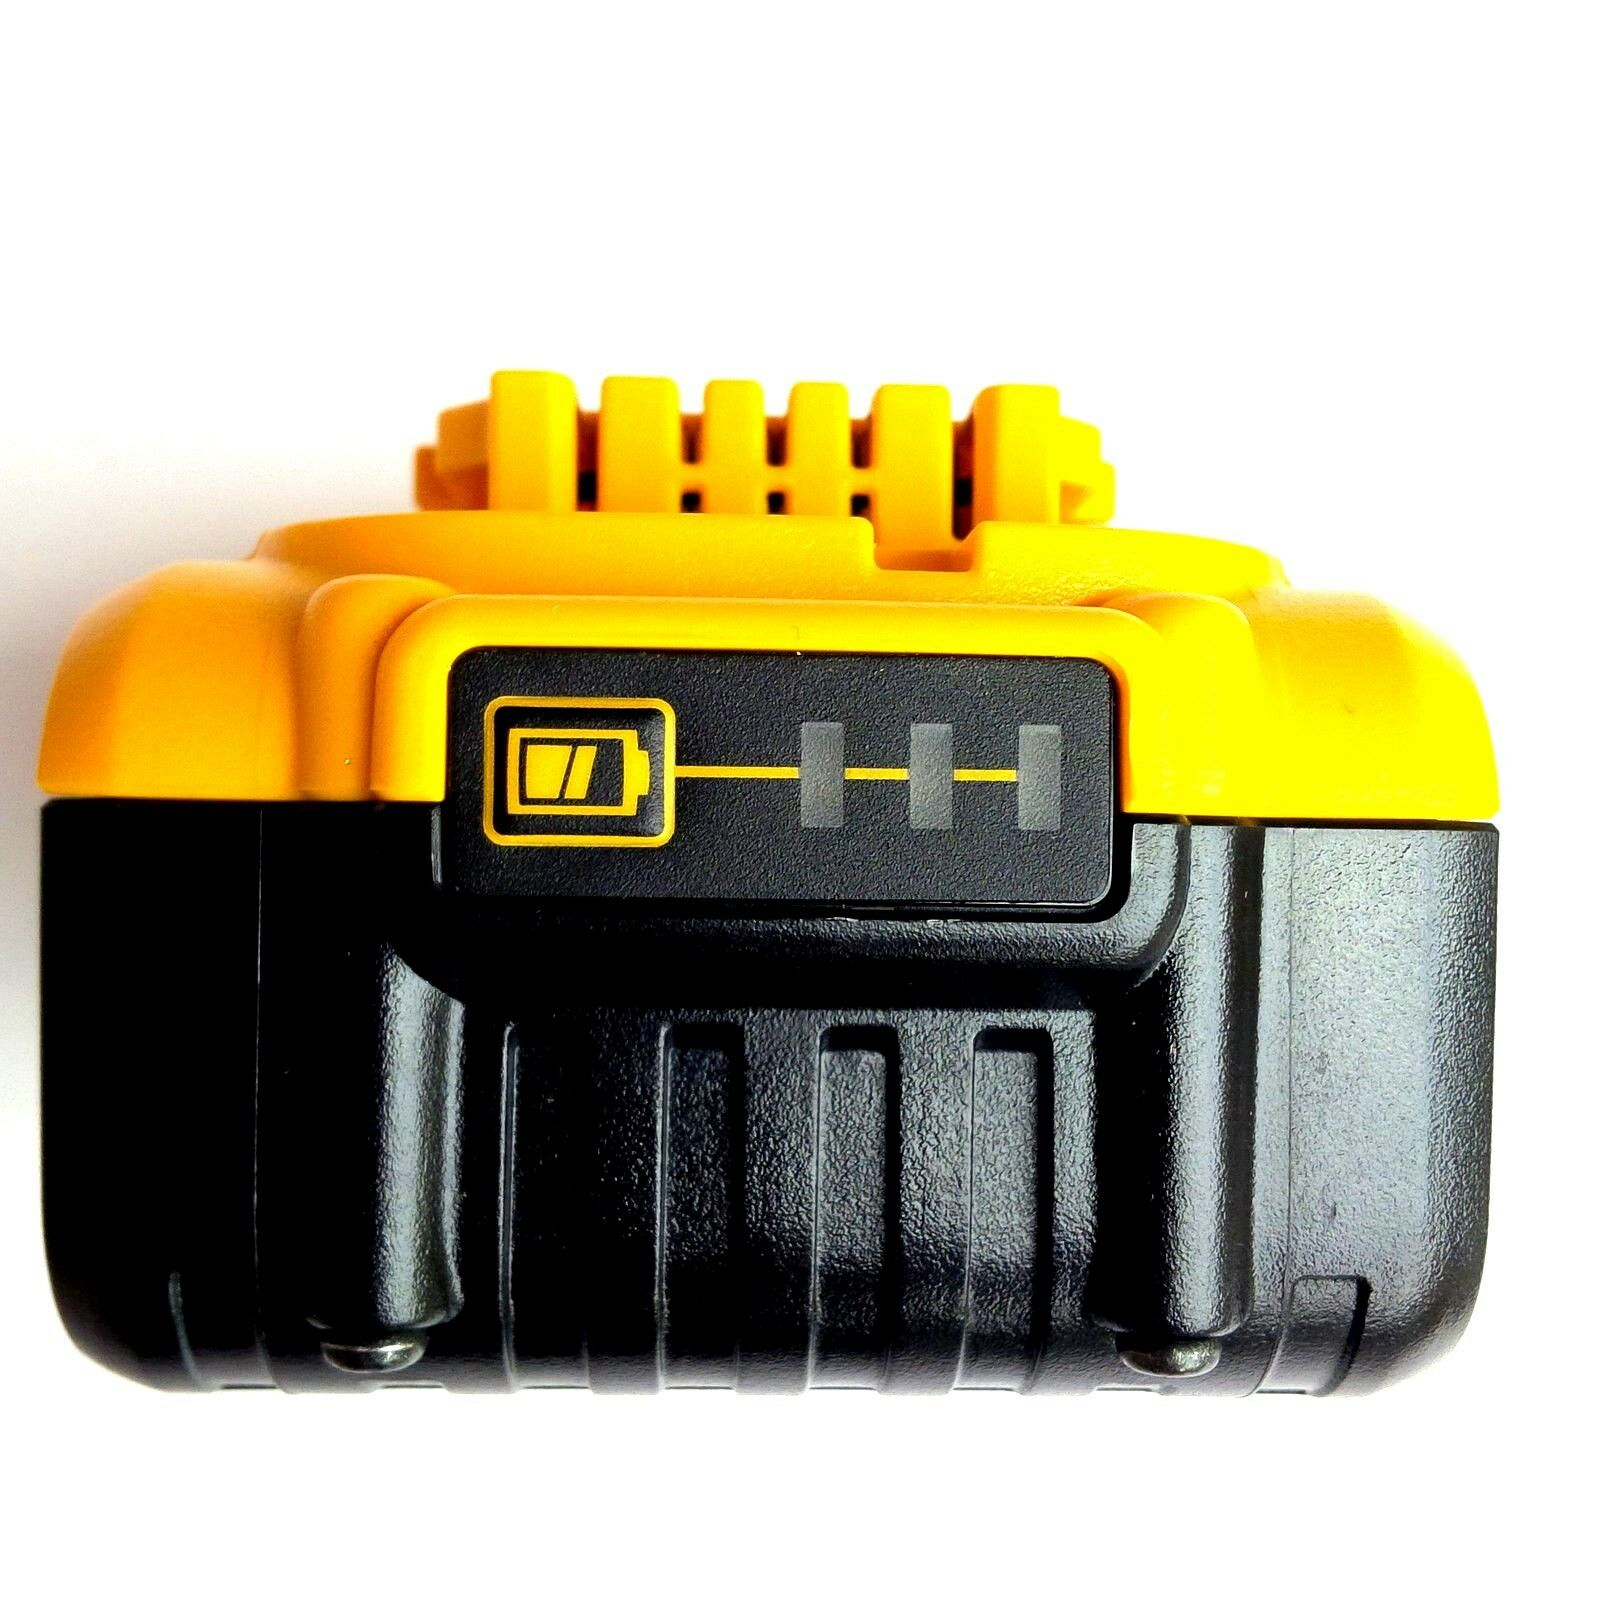 (1) New Genuine Dewalt 20V DCB205 5.0 AH Battery, (1) DCB115 Charger 20 Volt MAX